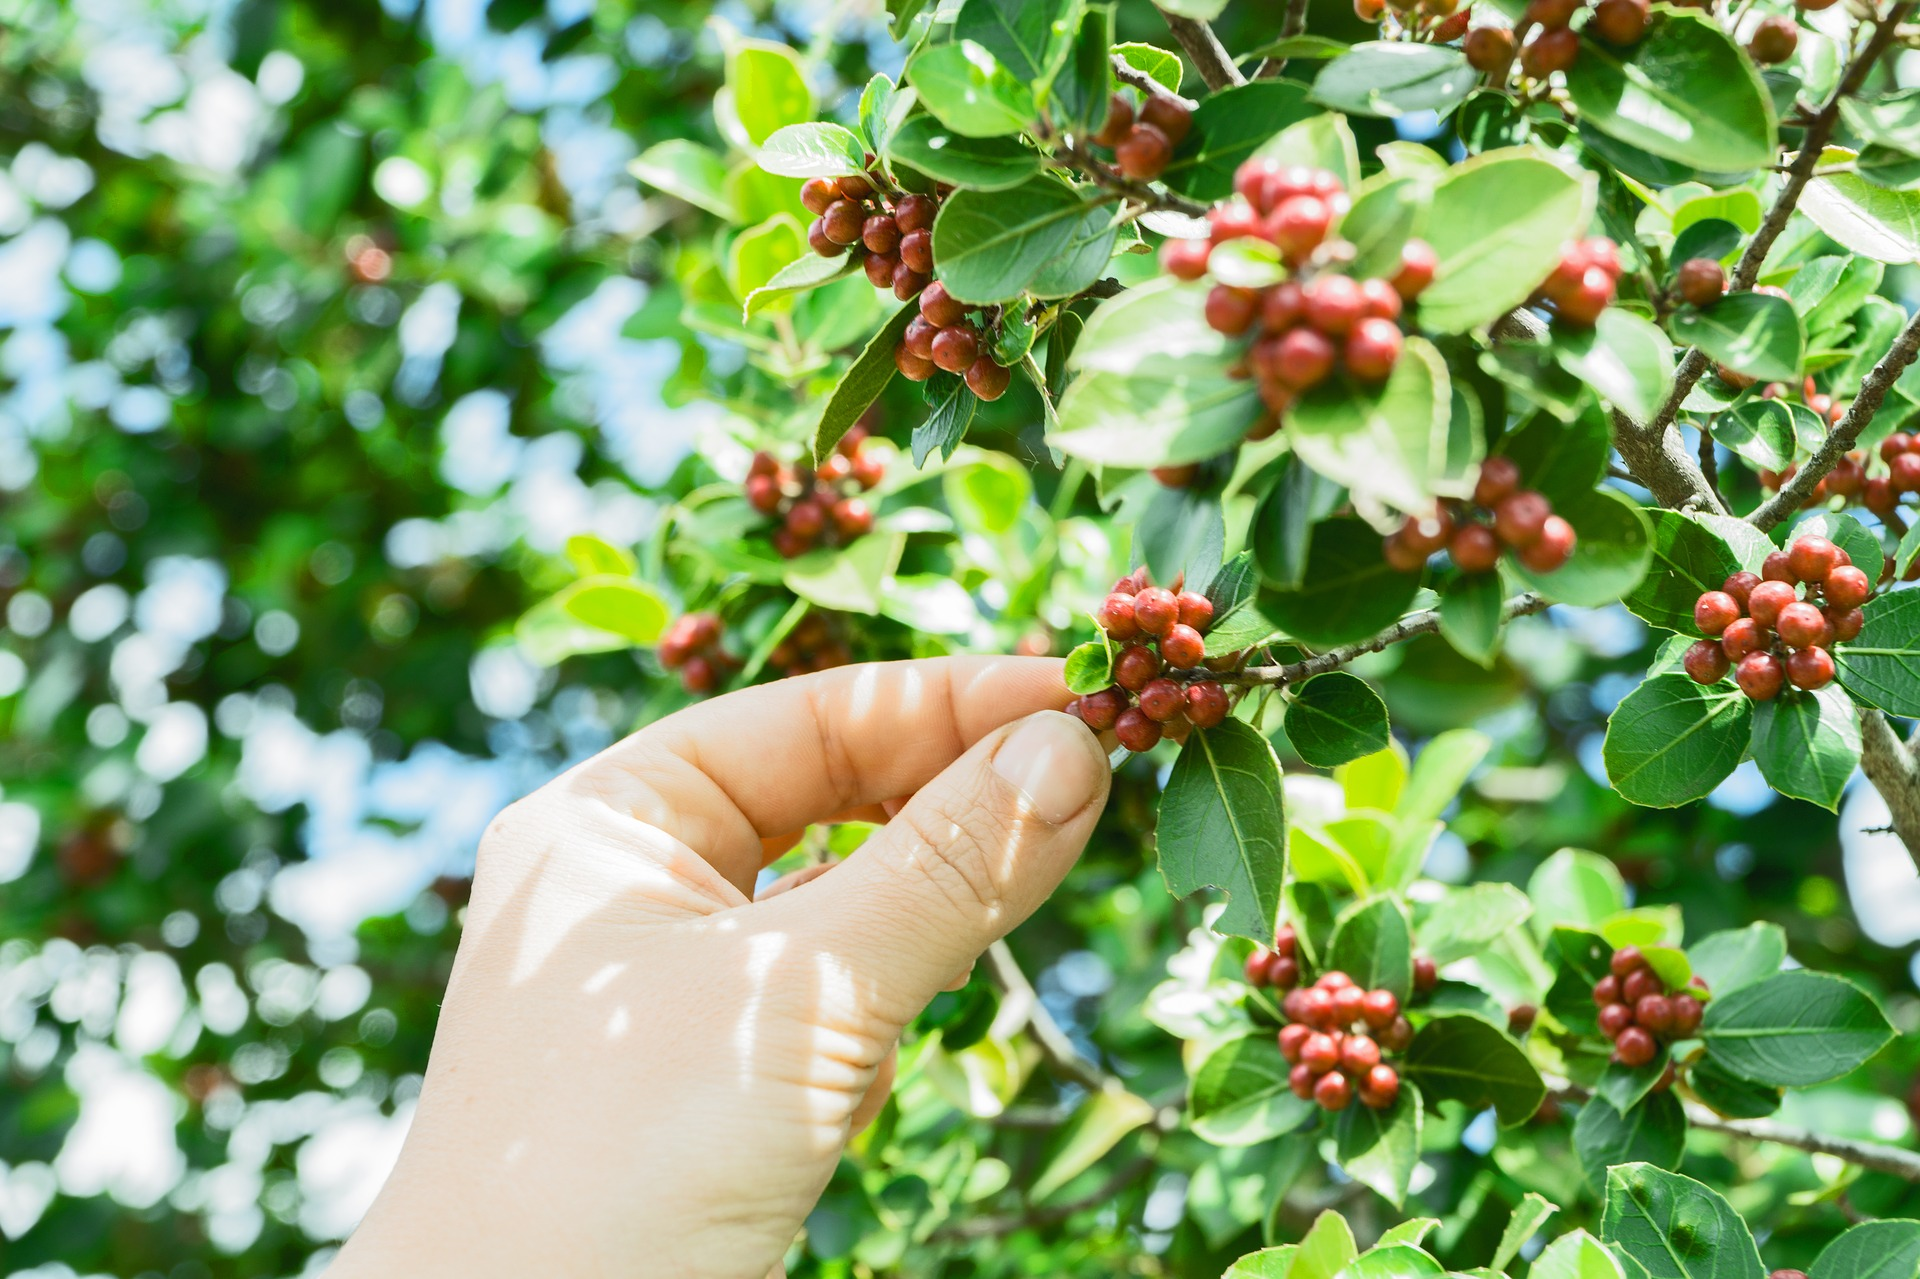 picking coffee cherries from tree